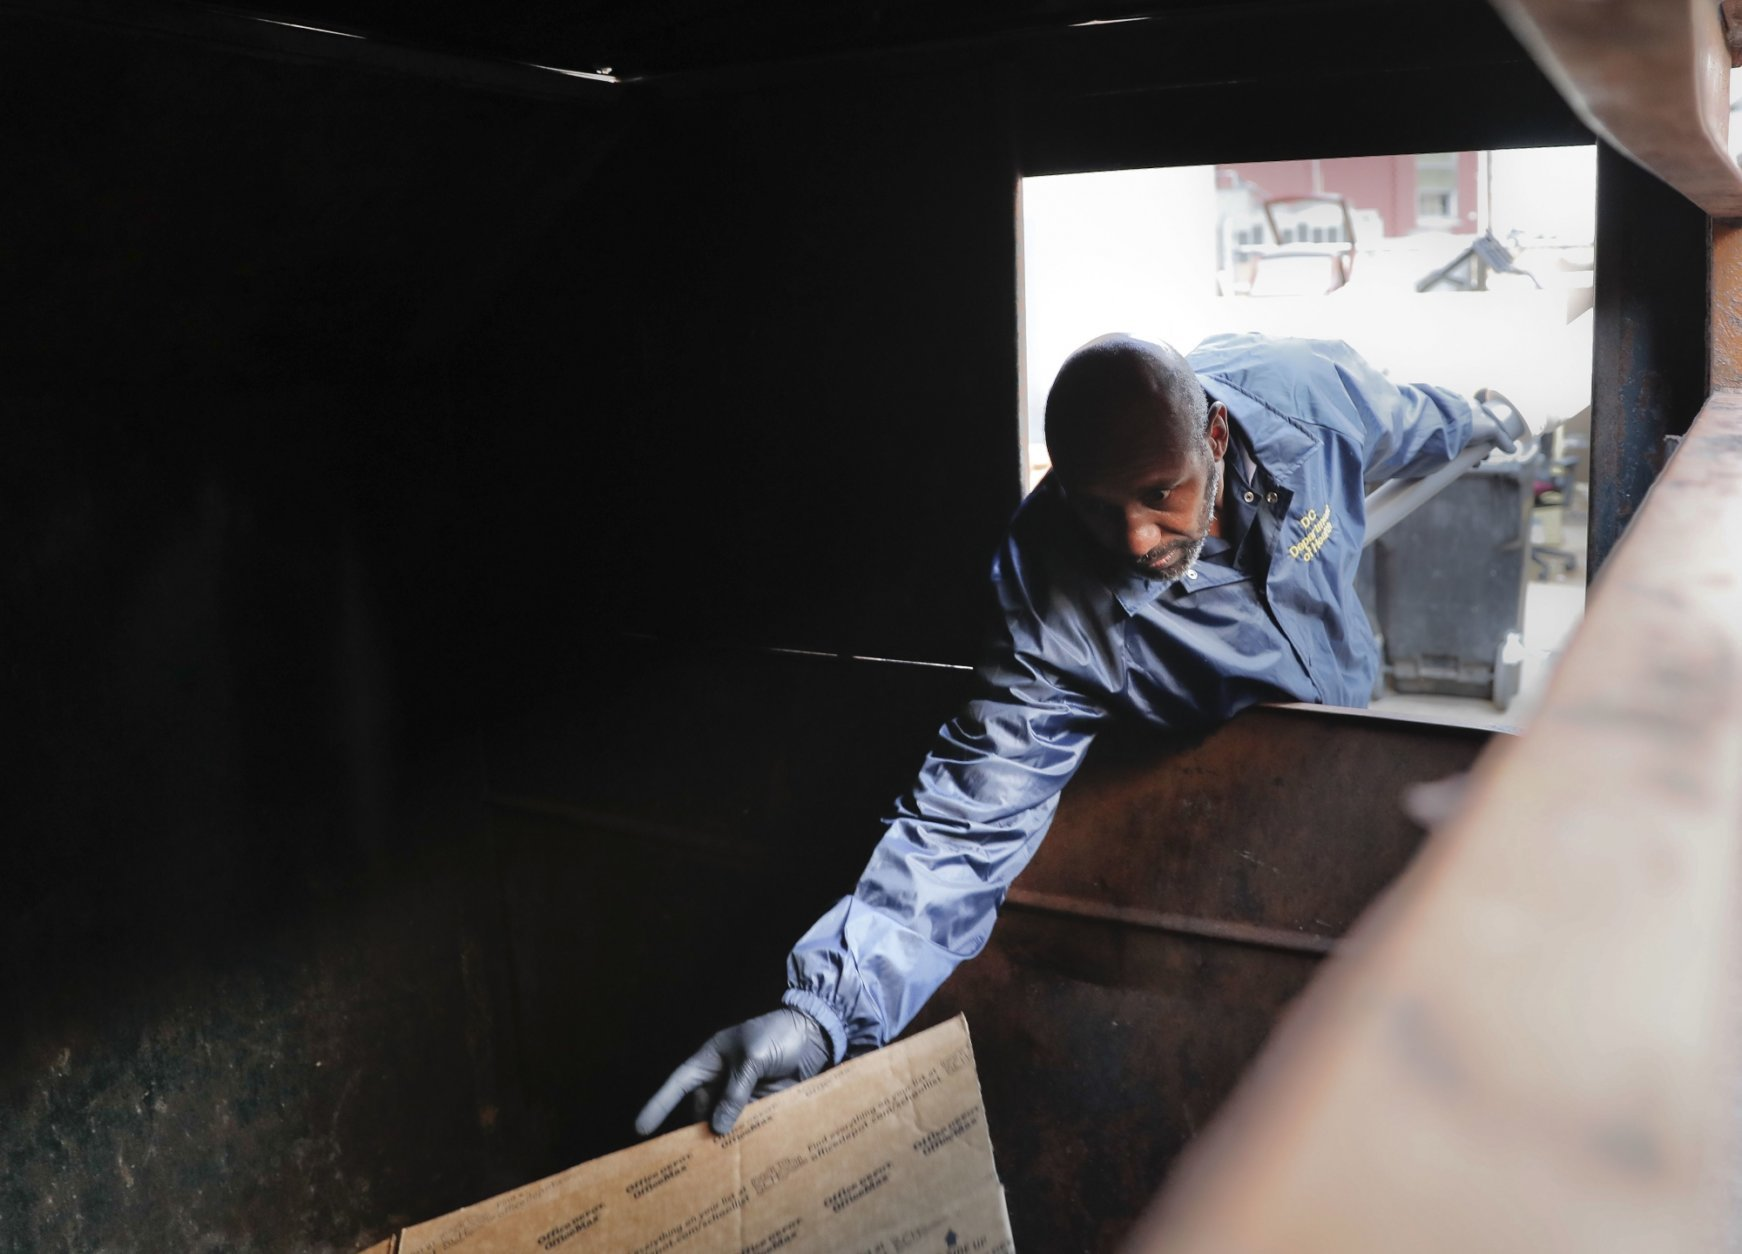 Pest Control Officer Gregory Cornes, from the D.C. Department of Health's Rodent Control Division, inspects a trash dumpster in an alley behind an office building in downtown Washington, Wednesday, Oct. 17, 2019. The nation's capital is facing a spiraling rat infestation, fueled by mild winters and a human population boom. Washington's government is struggling to keep pace (AP Photo/Pablo Martinez Monsivais)